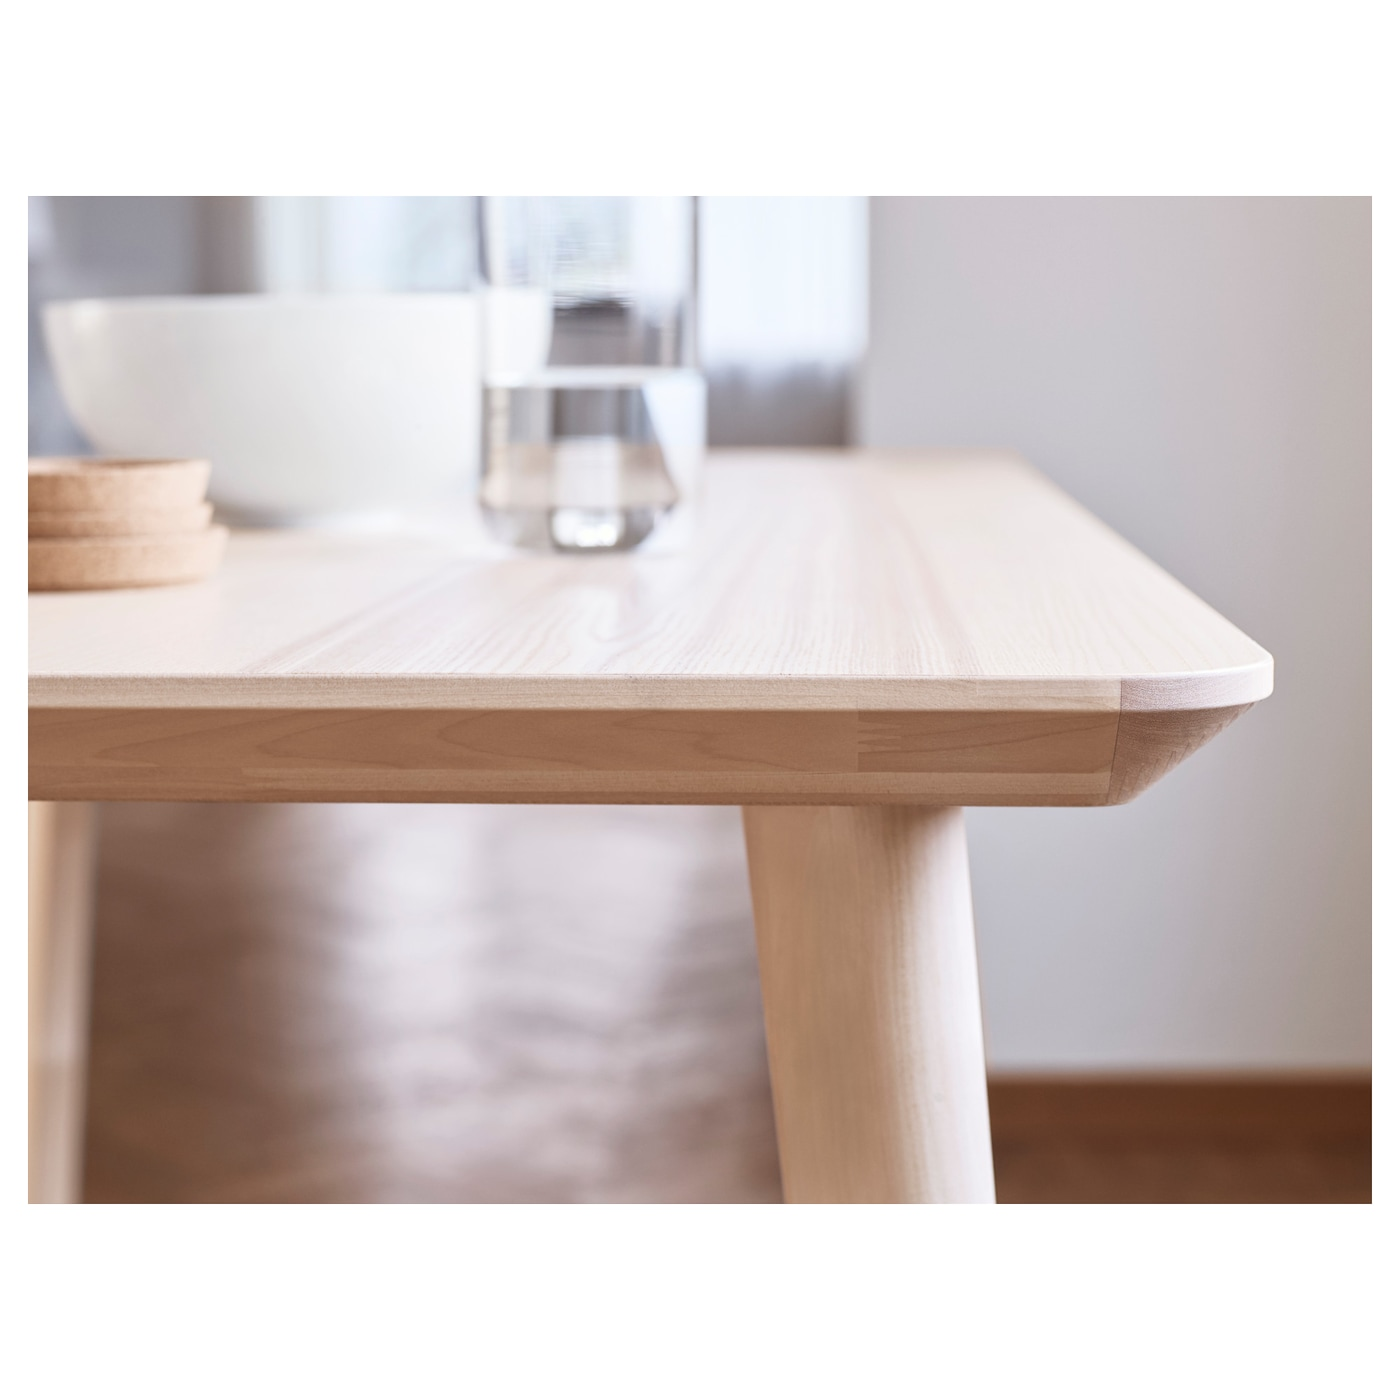 Lisabo coffee table ash veneer 70x70 cm ikea - Ikea table basse verre ...